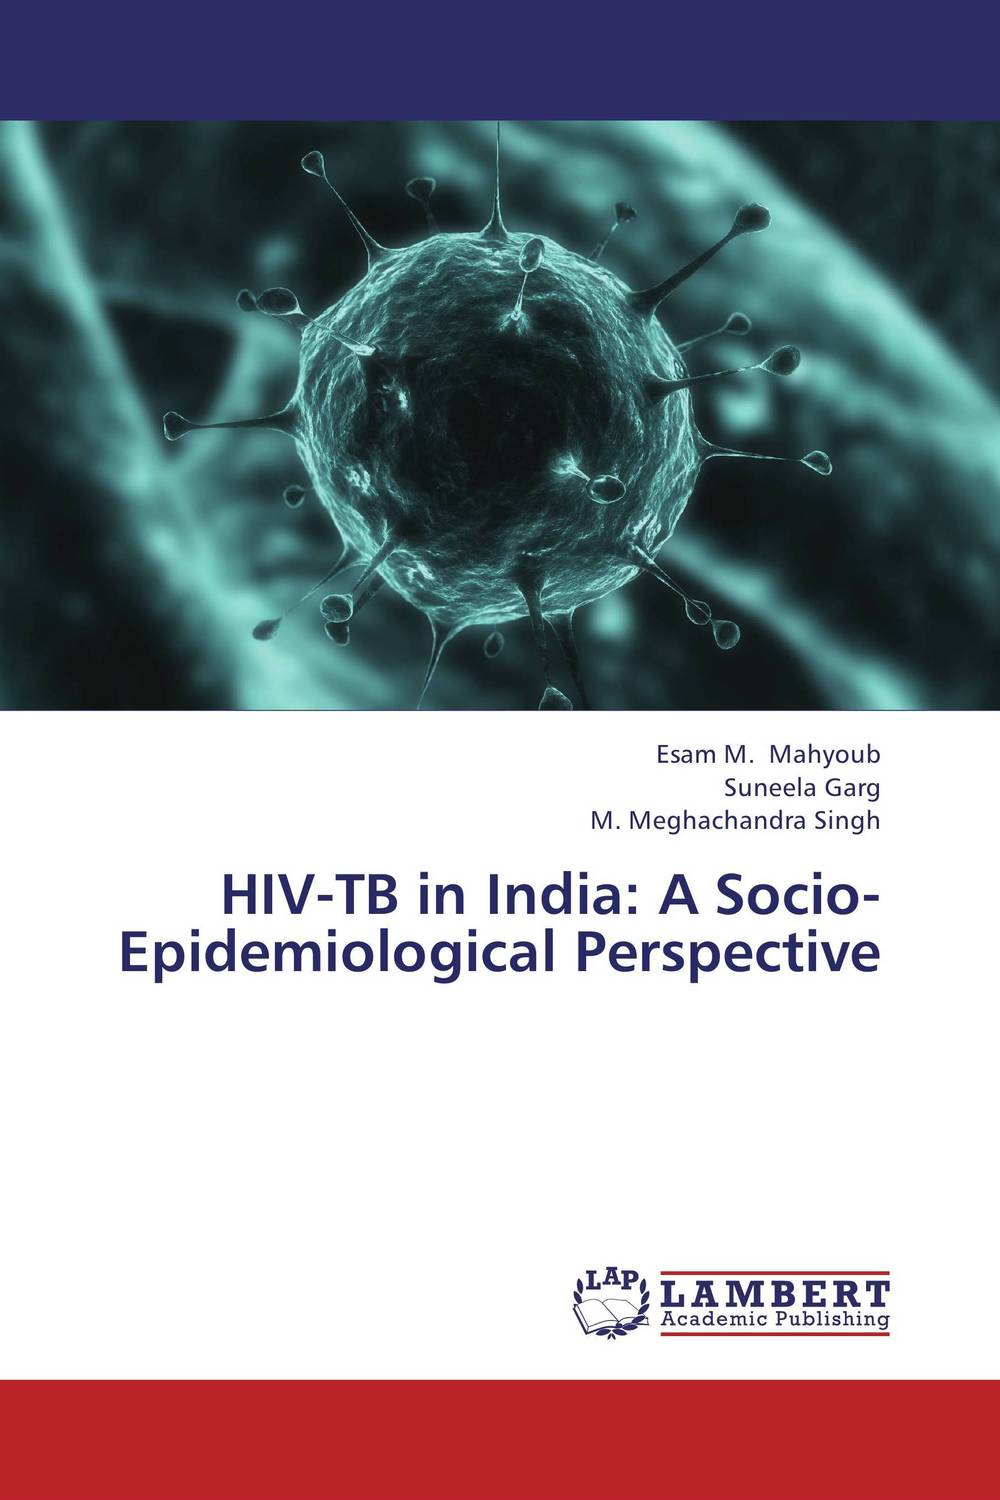 HIV-TB in India: A Socio-Epidemiological Perspective presidential nominee will address a gathering